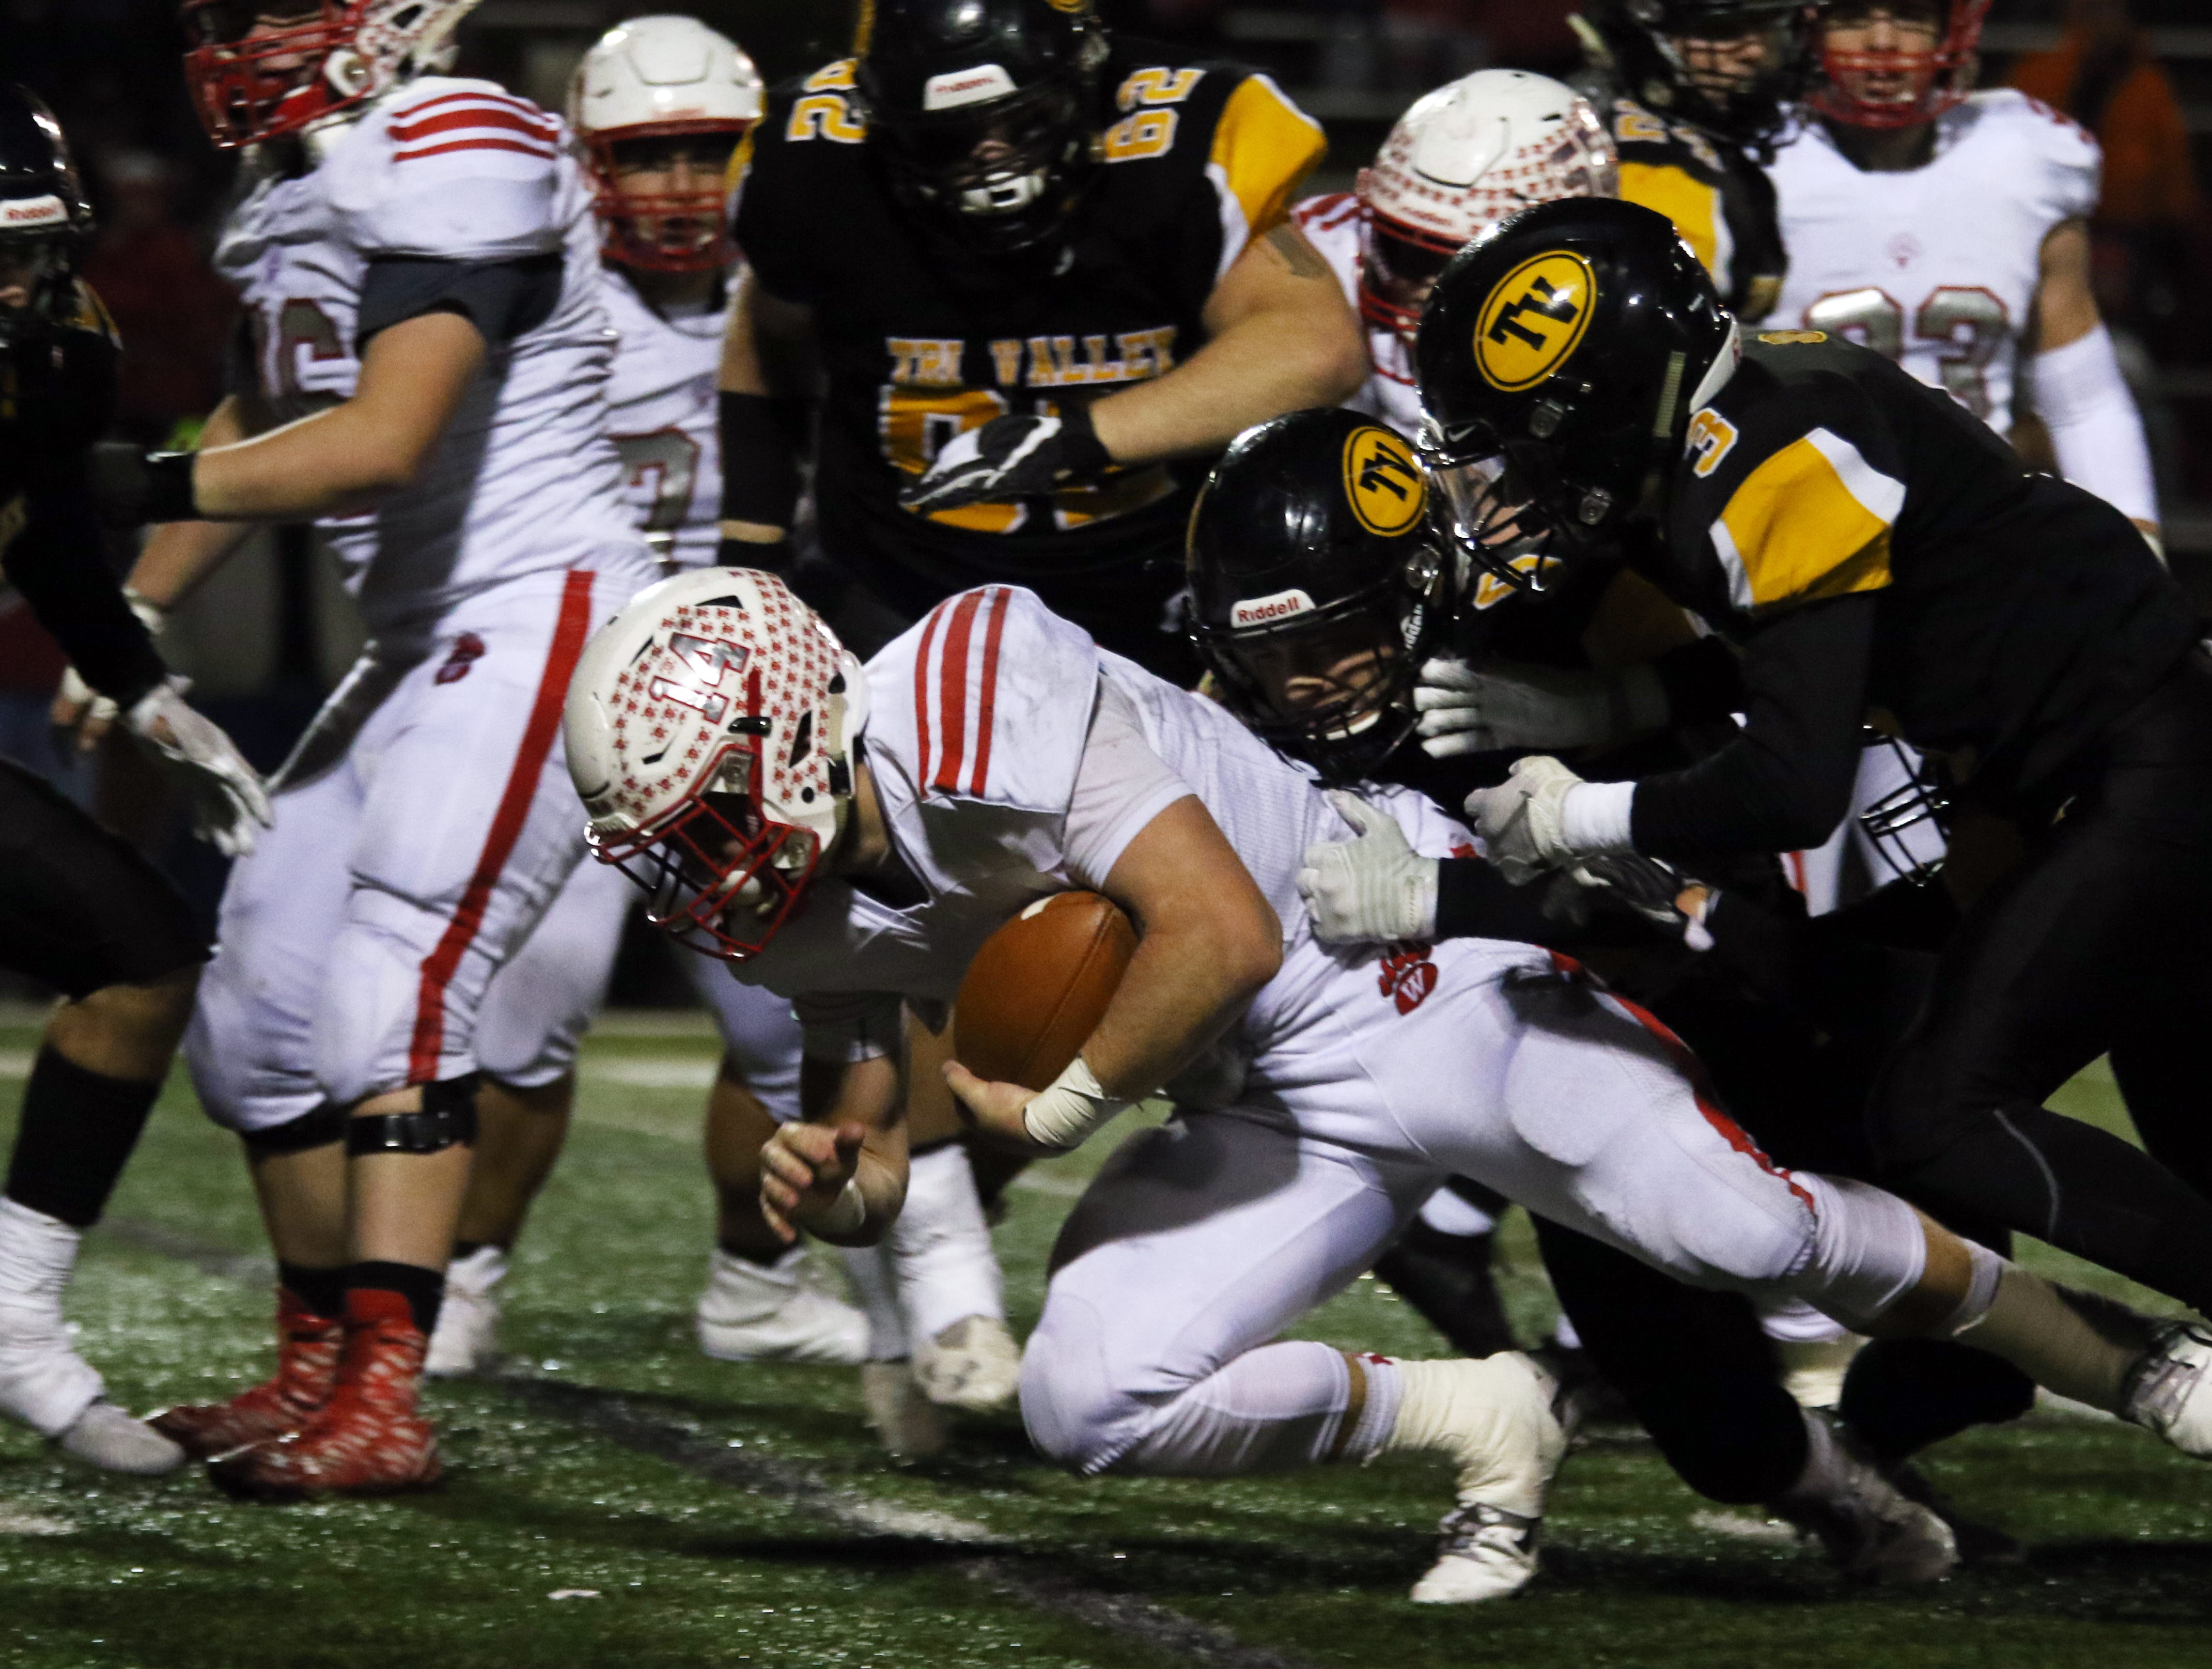 A pair of Tri-Valley defenders tackle a Wadsworth ball carrier.